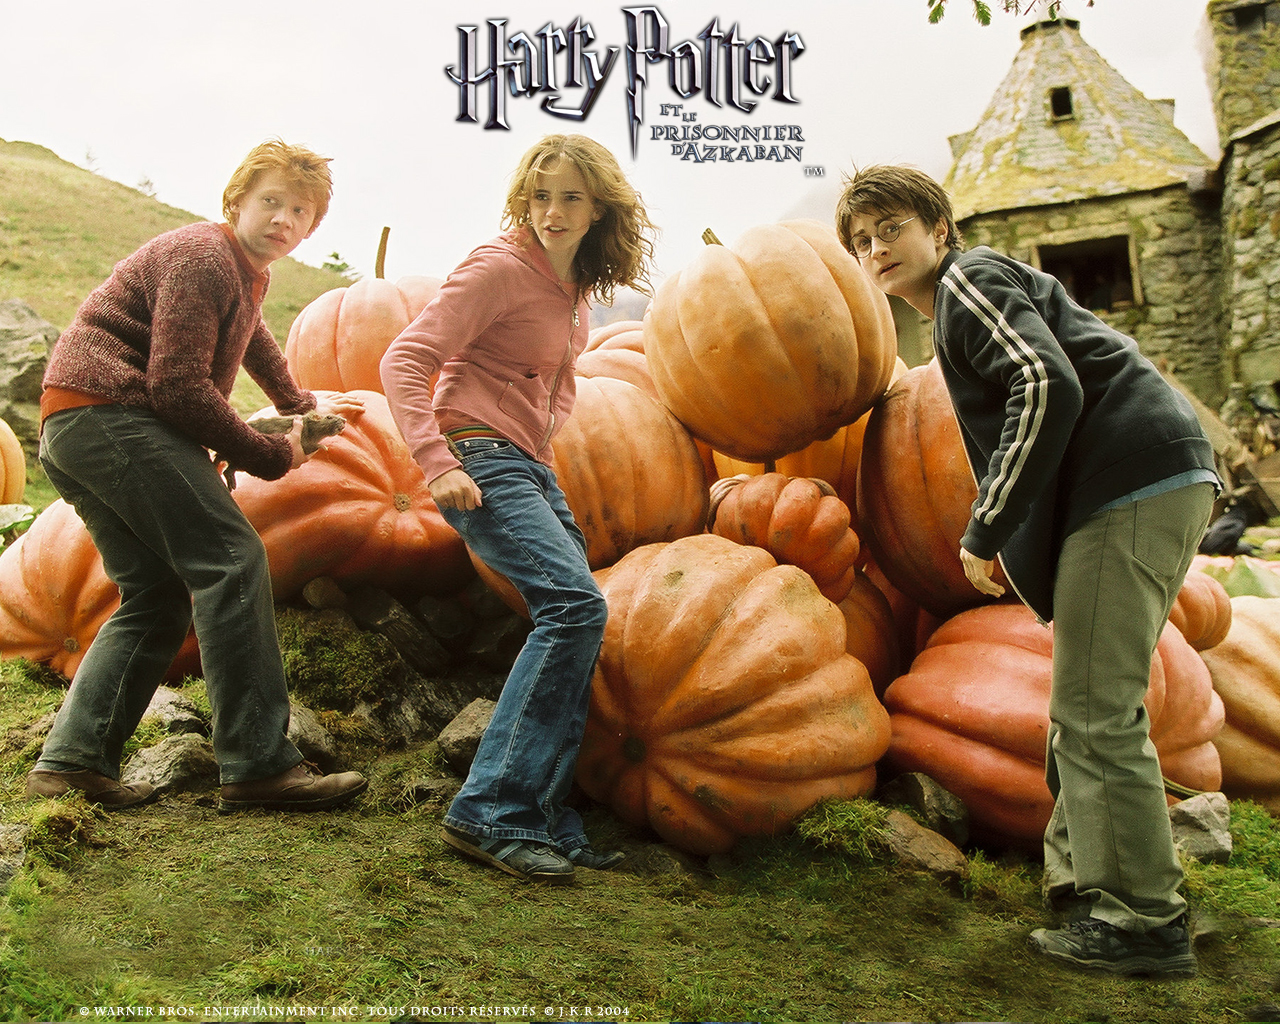 Wallpaper Harry Potter Prisonnier Azkaban